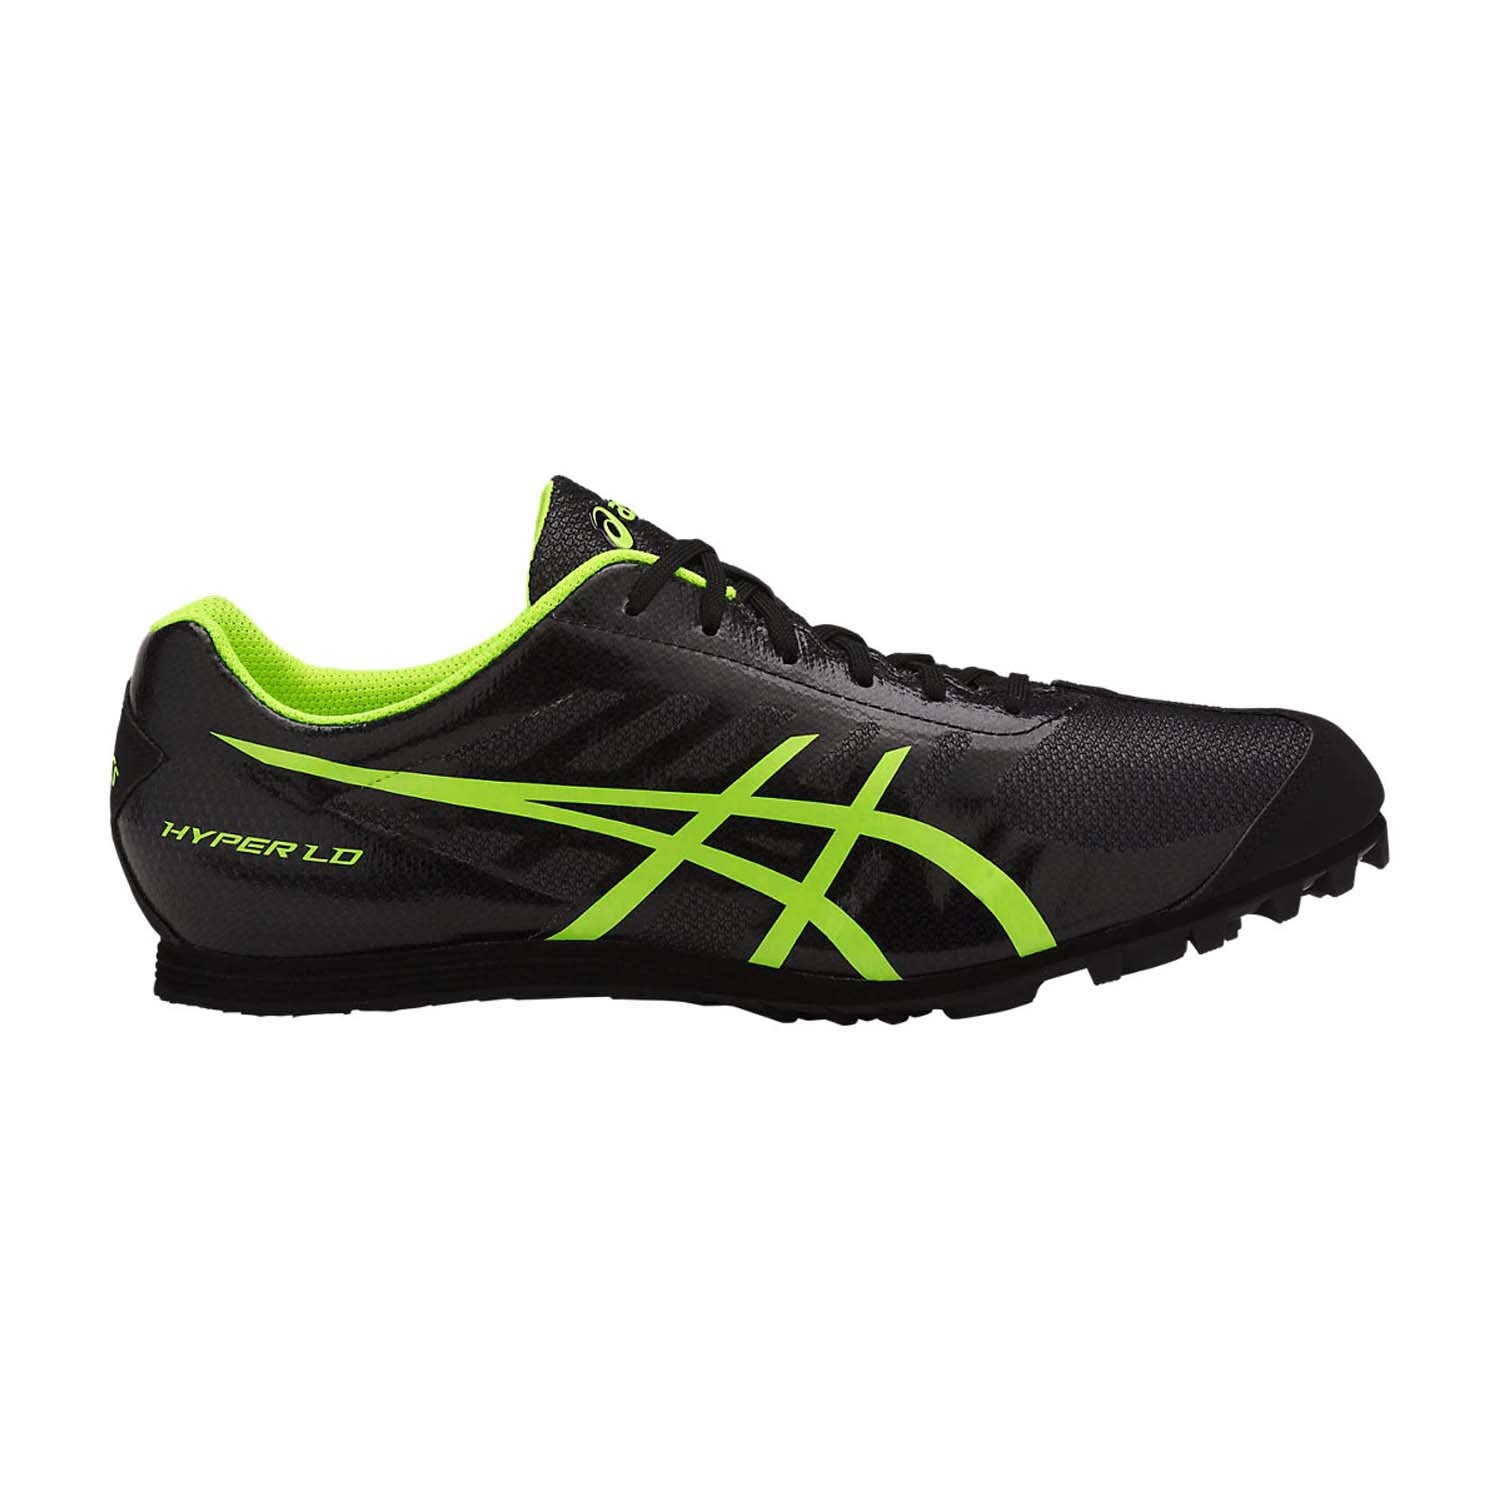 ASICS Men's Hyper LD 5 Track and Field Shoe - G404Y.9007 (Black/Safety Yellow - 11.5)